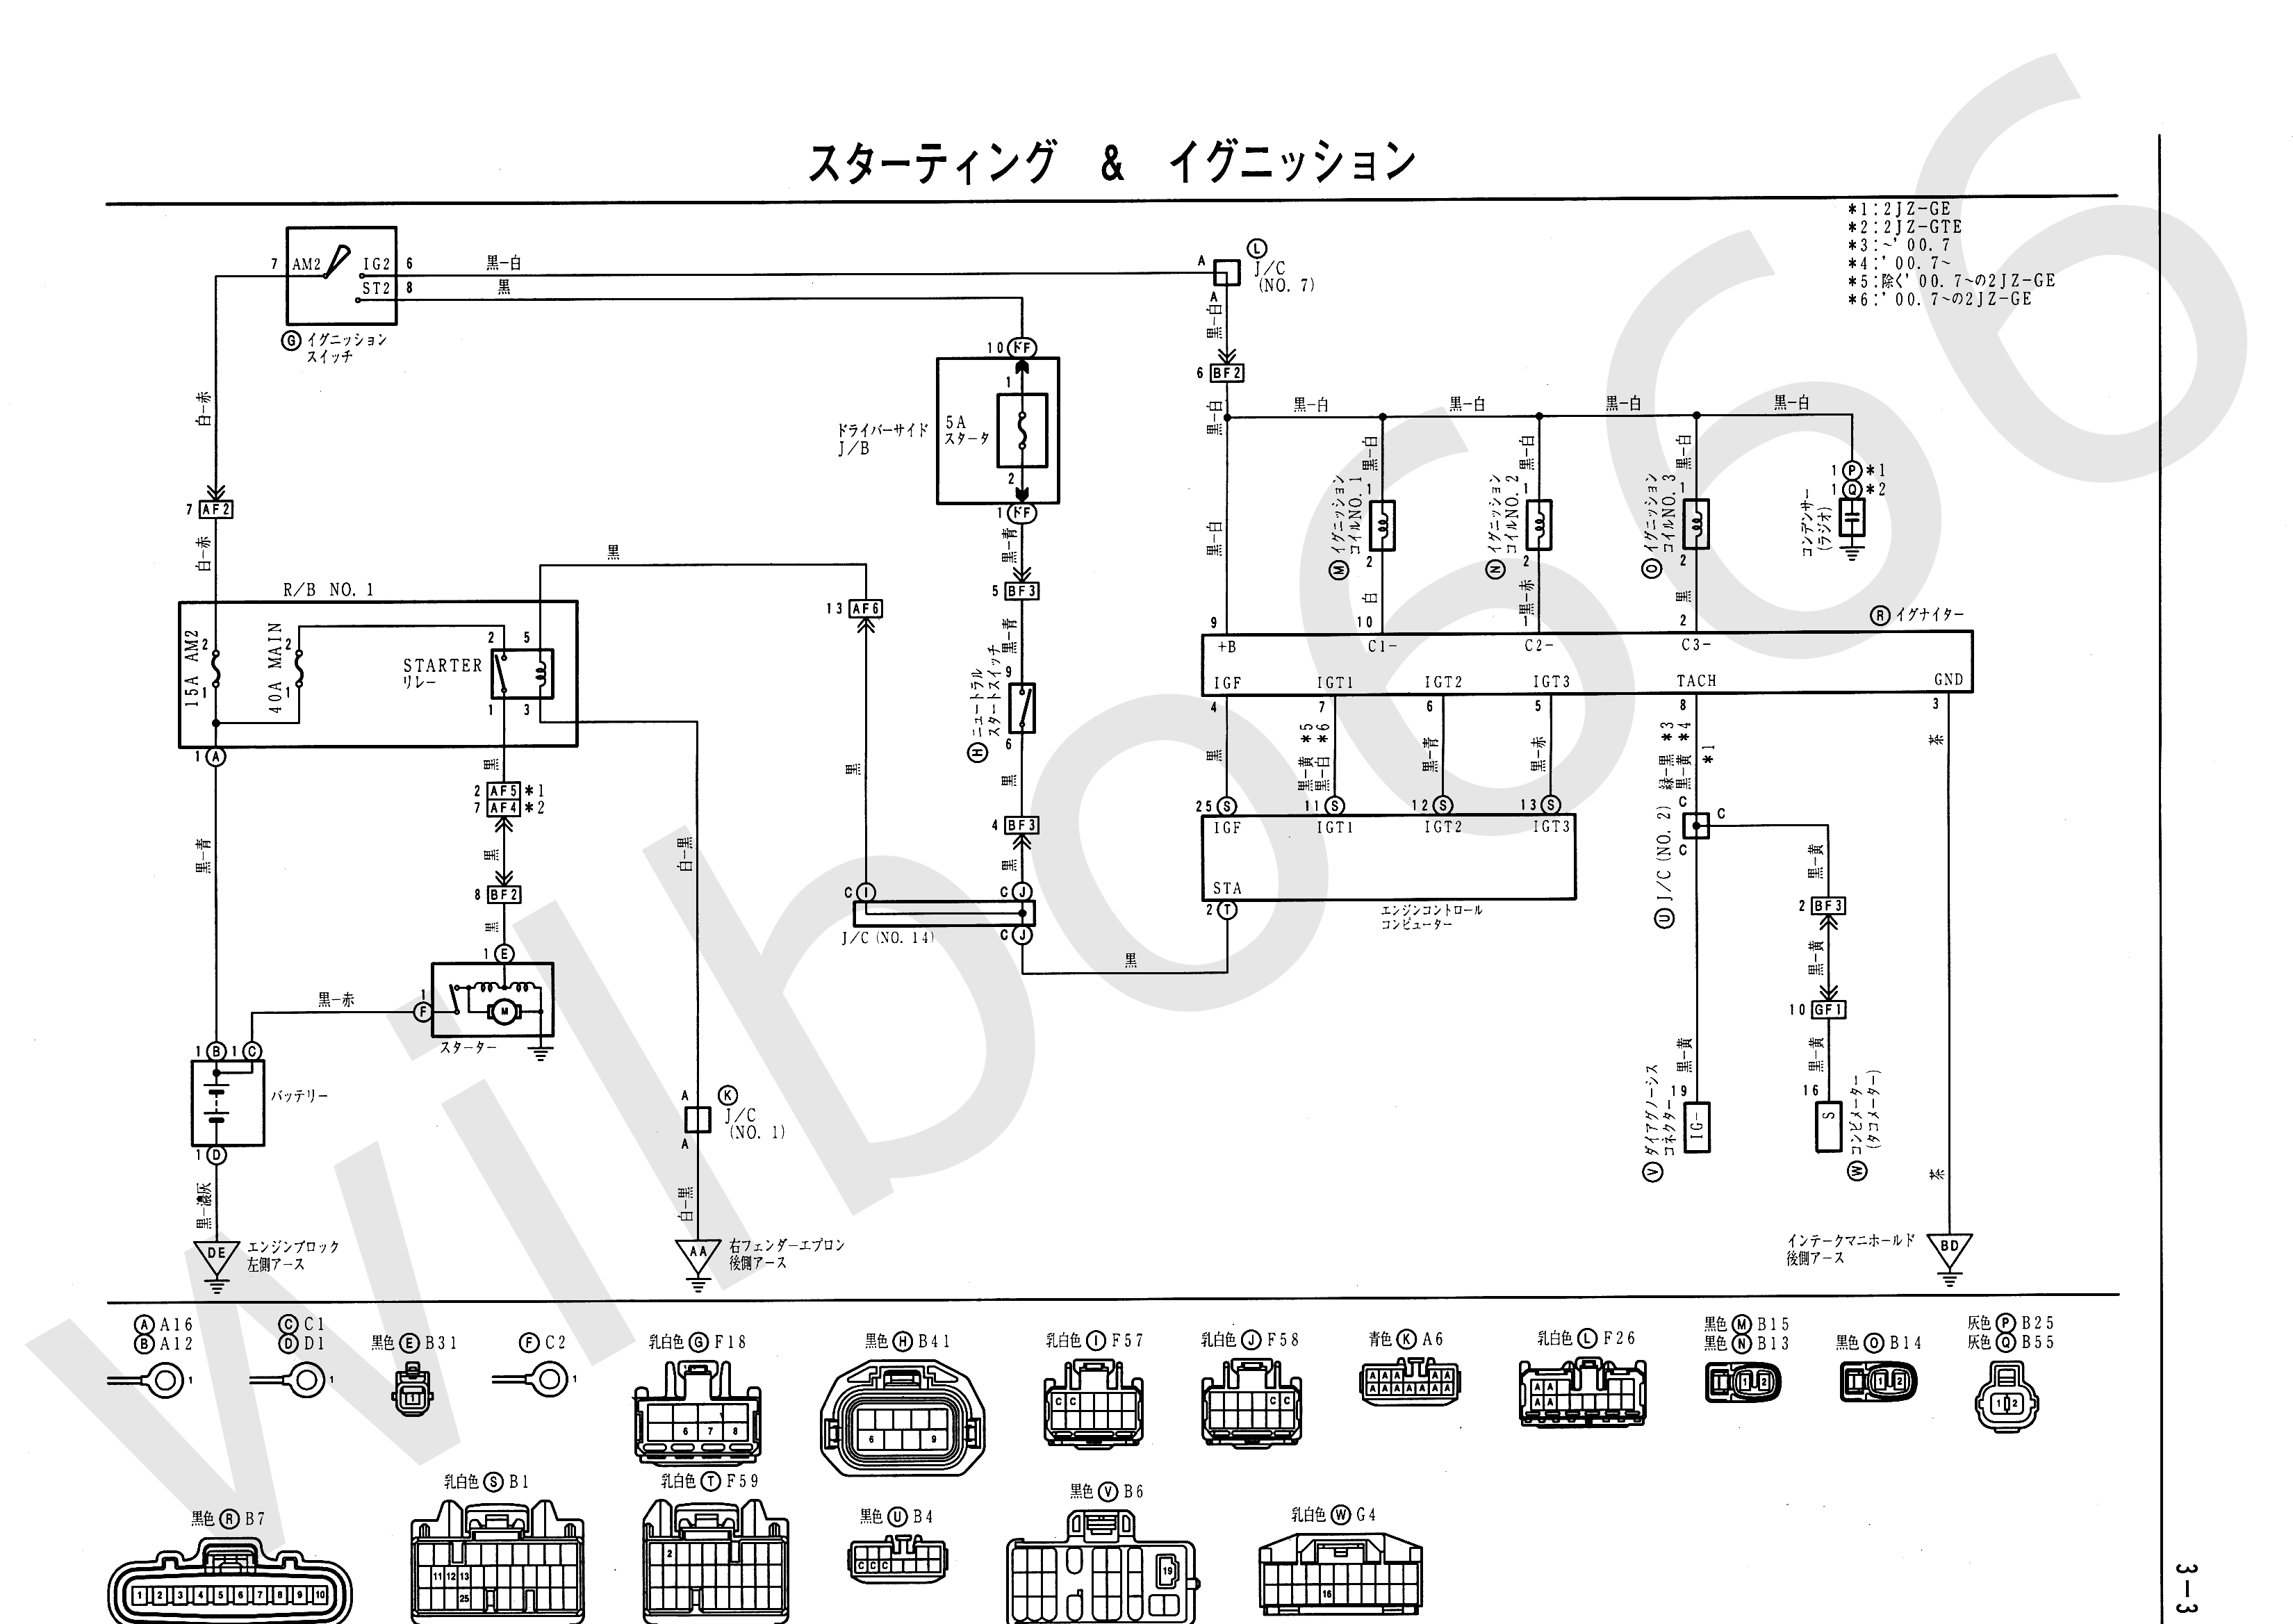 Wilbo666 2jz Gte Vvti Jzs161 Aristo Engine Wiring 2 Line Phone Systems Diagram Toyota Diagrams